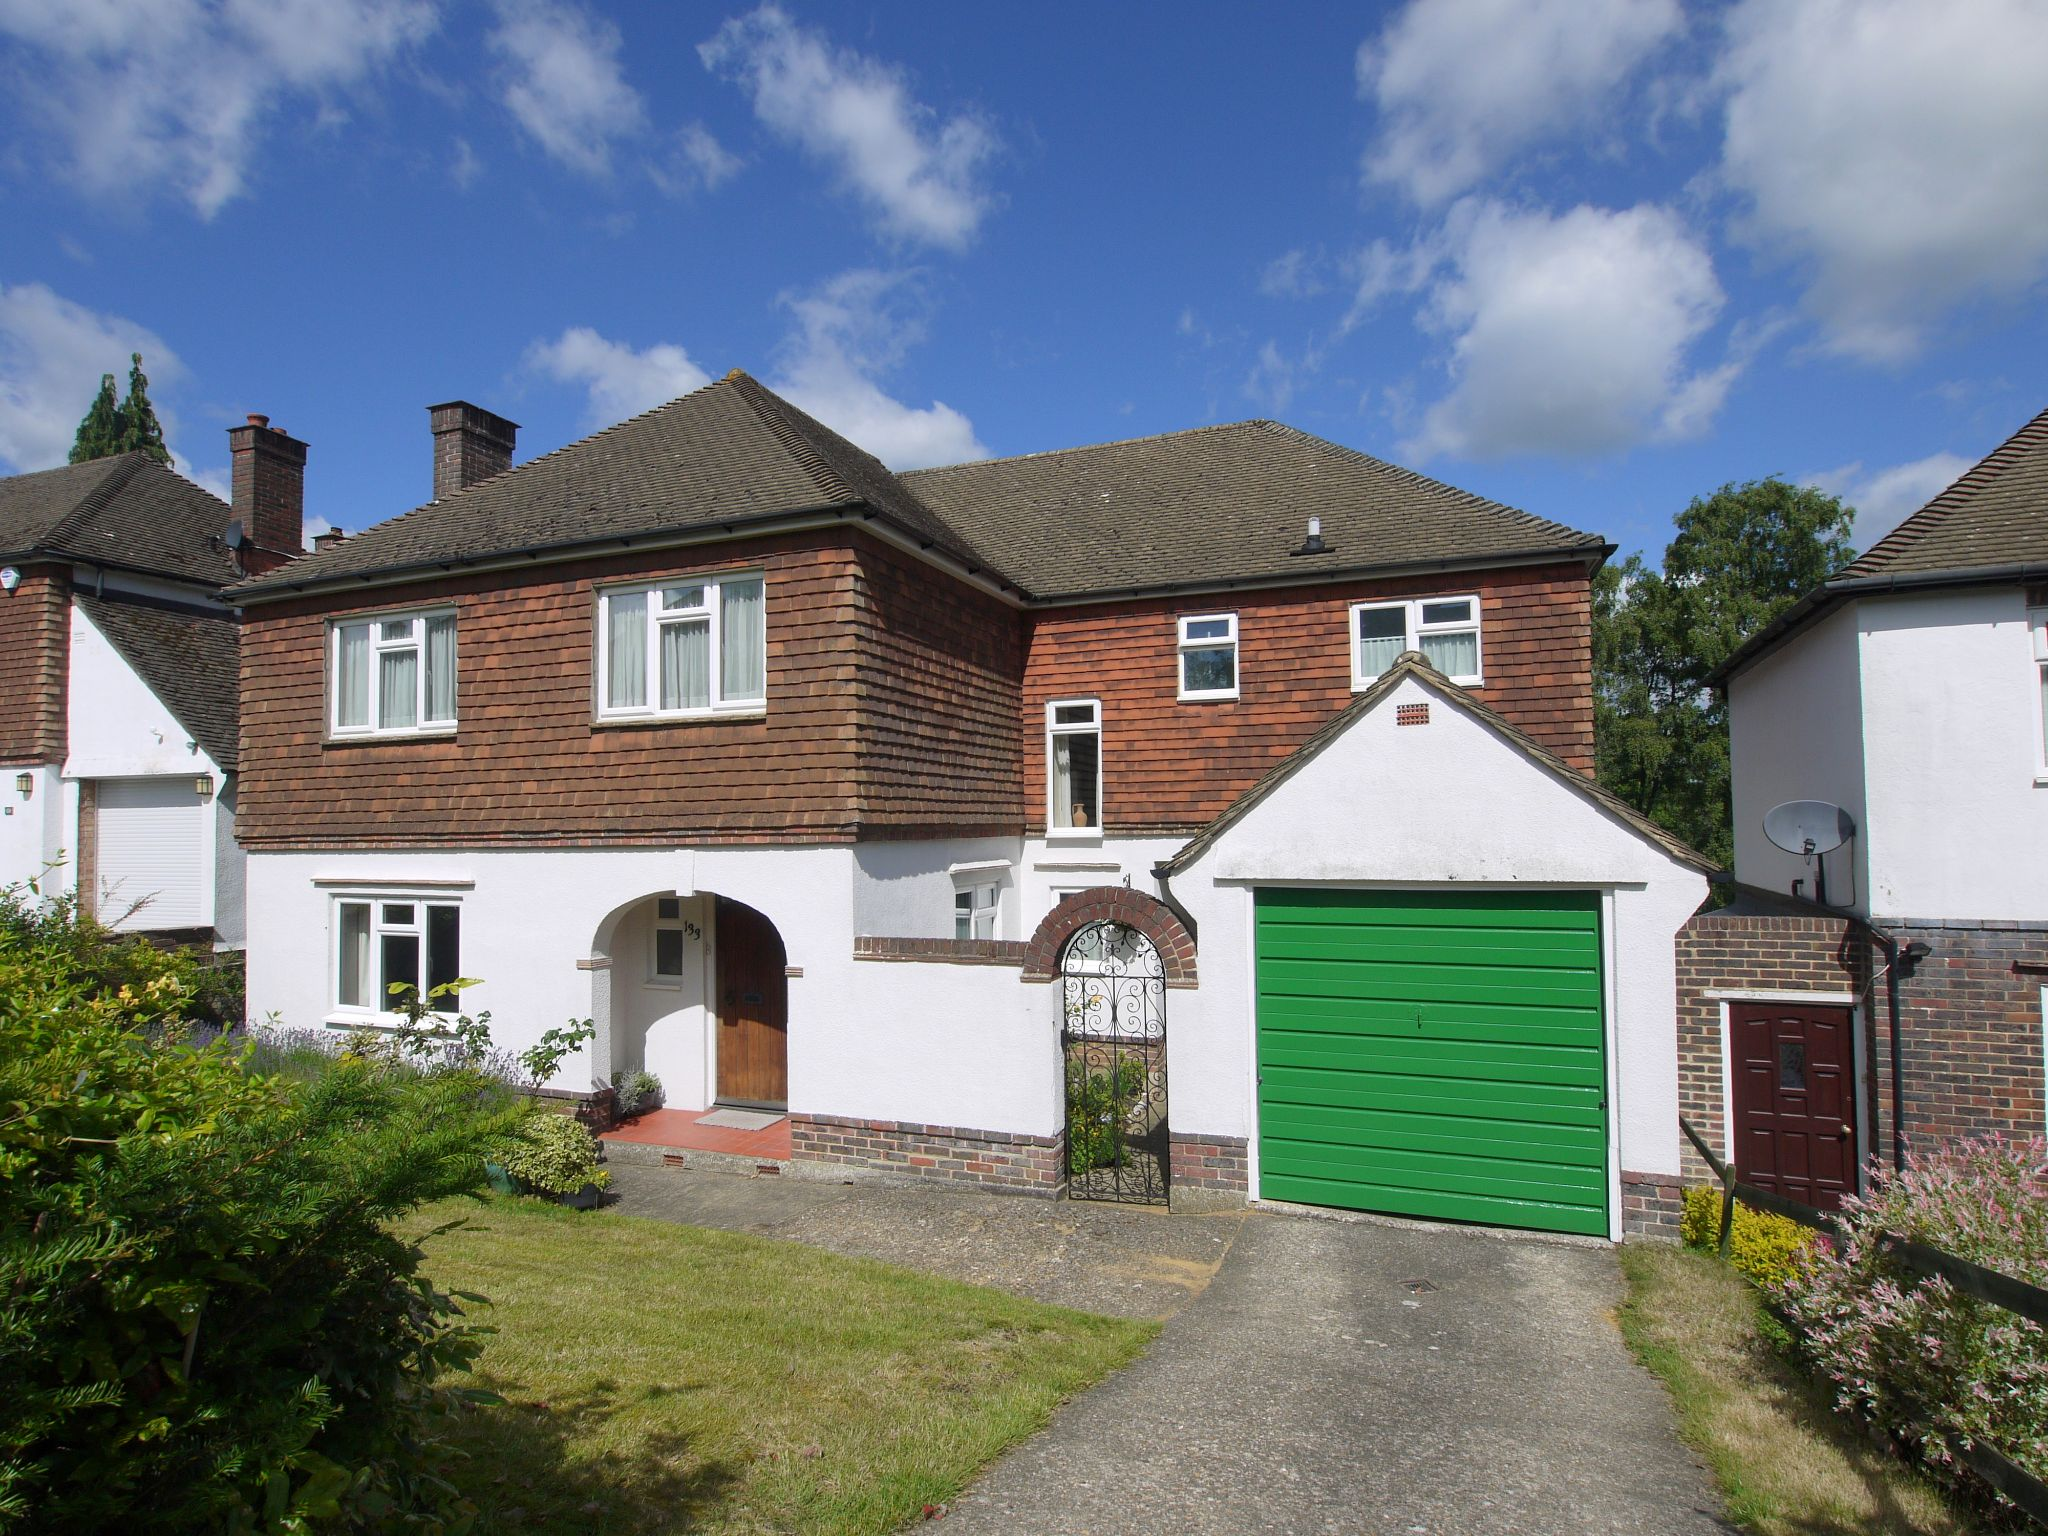 5 bedroom detached house Sold in Sevenoaks - Photograph 1